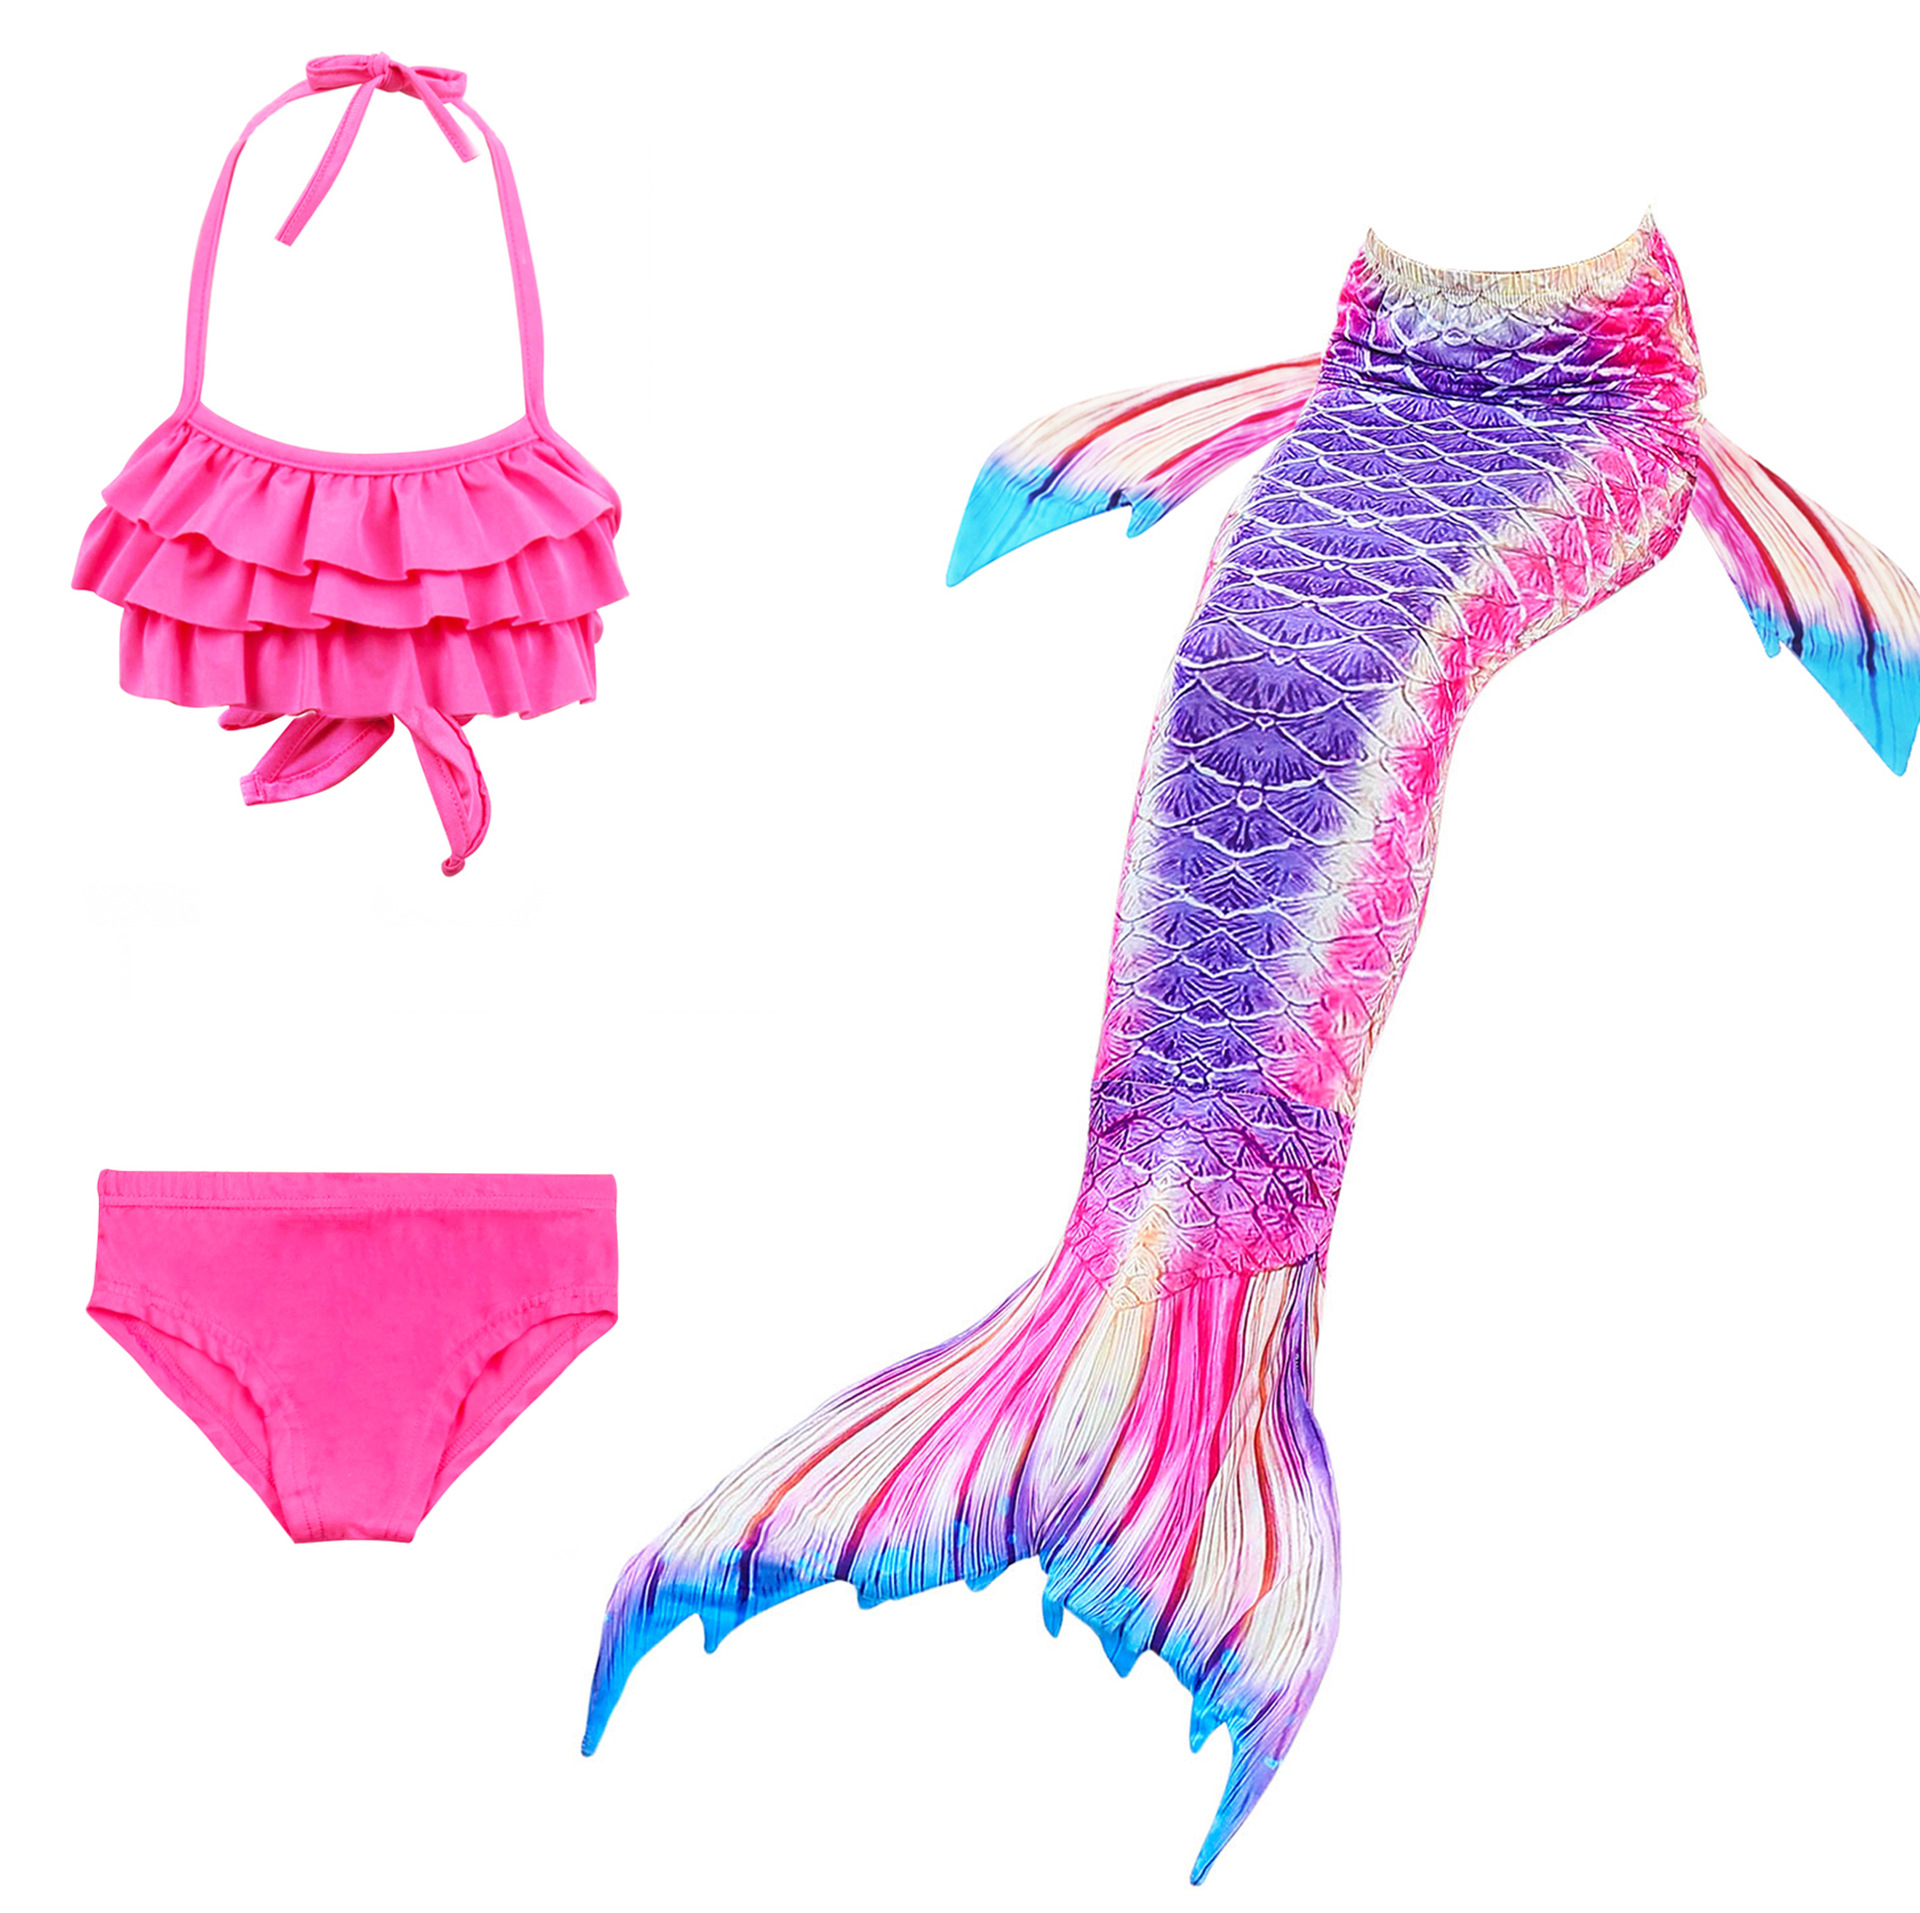 9301037214 898390851 - 4PCS/Set HOT Kids Girls Mermaid Tails with Fin Swimsuit Bikini Bathing Suit Dress for Girls With Flipper Monofin For Swim